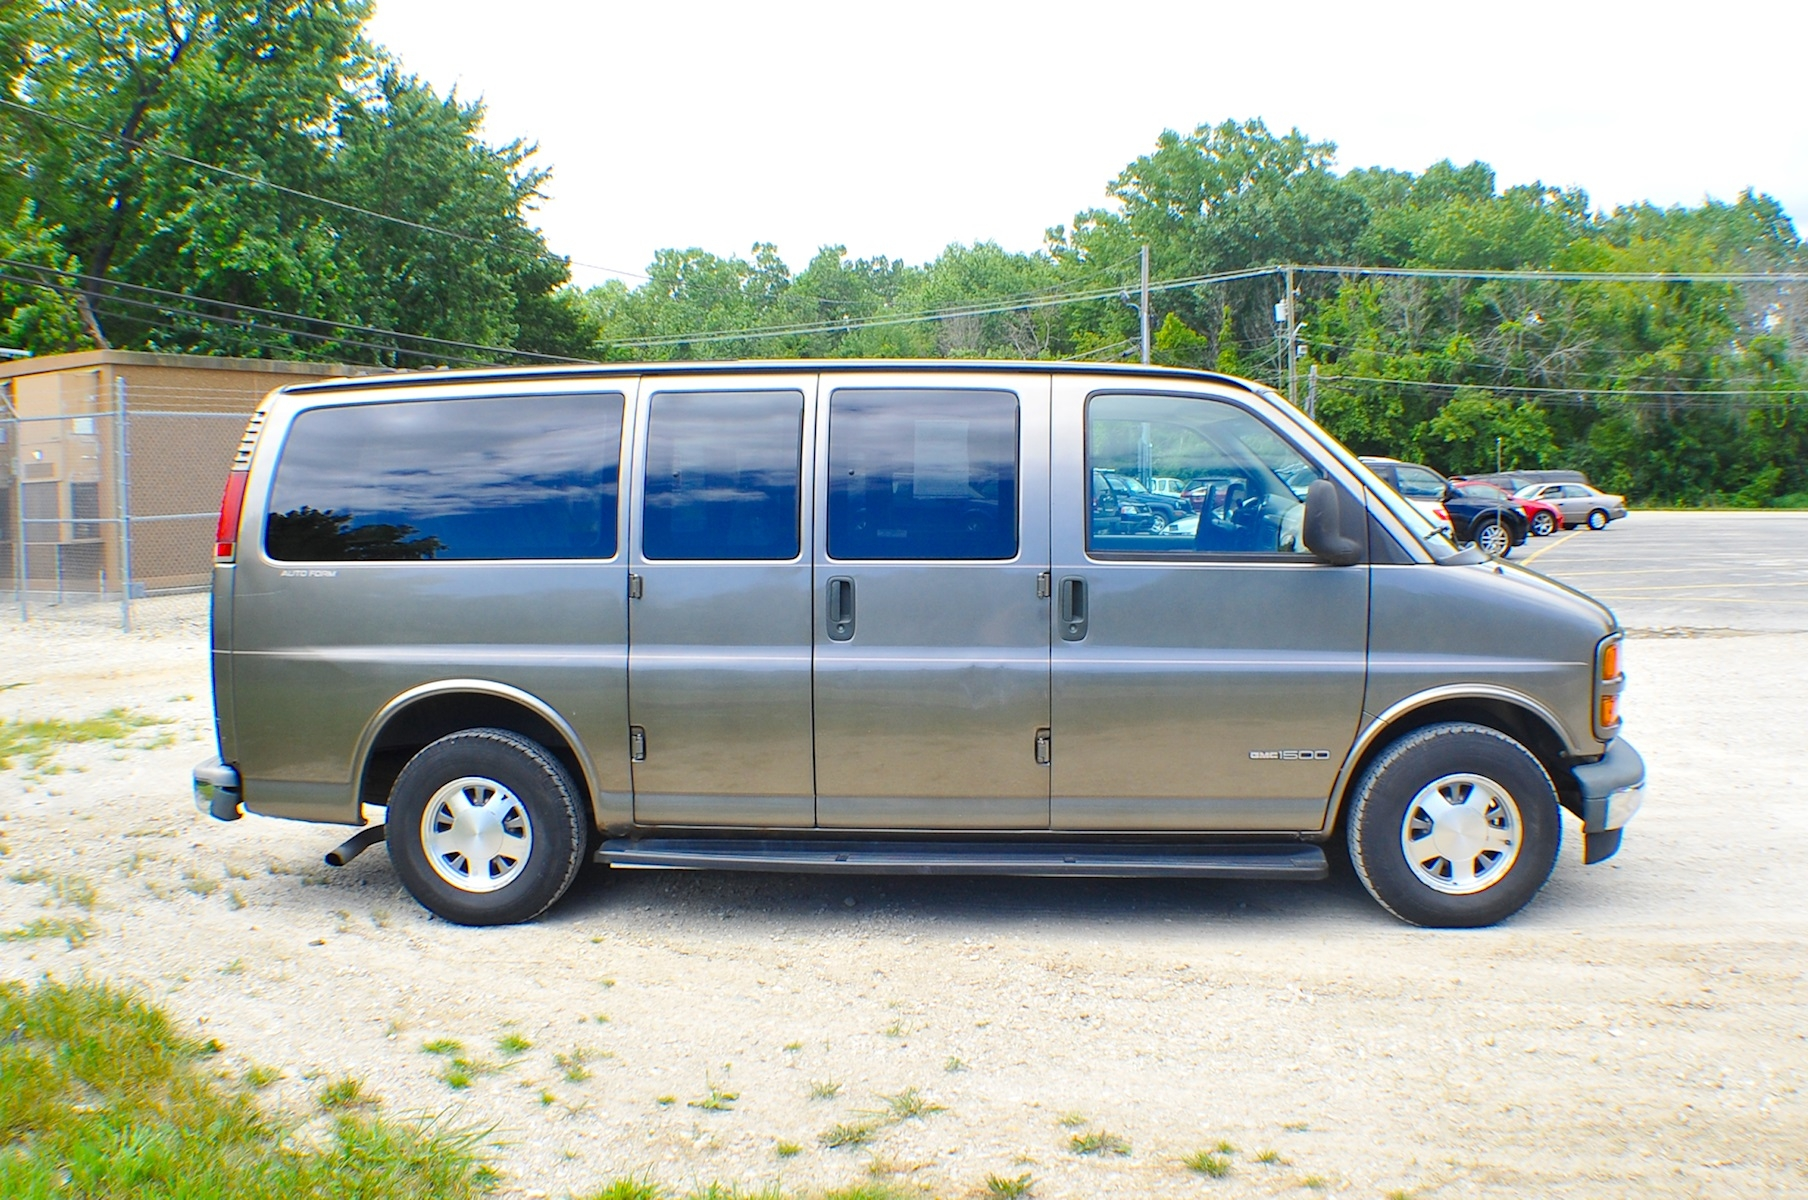 2000 GMC Savana Pewter 1500 Conversion Van Sale Buffalo Grove Deerfield Fox Lake Antioch